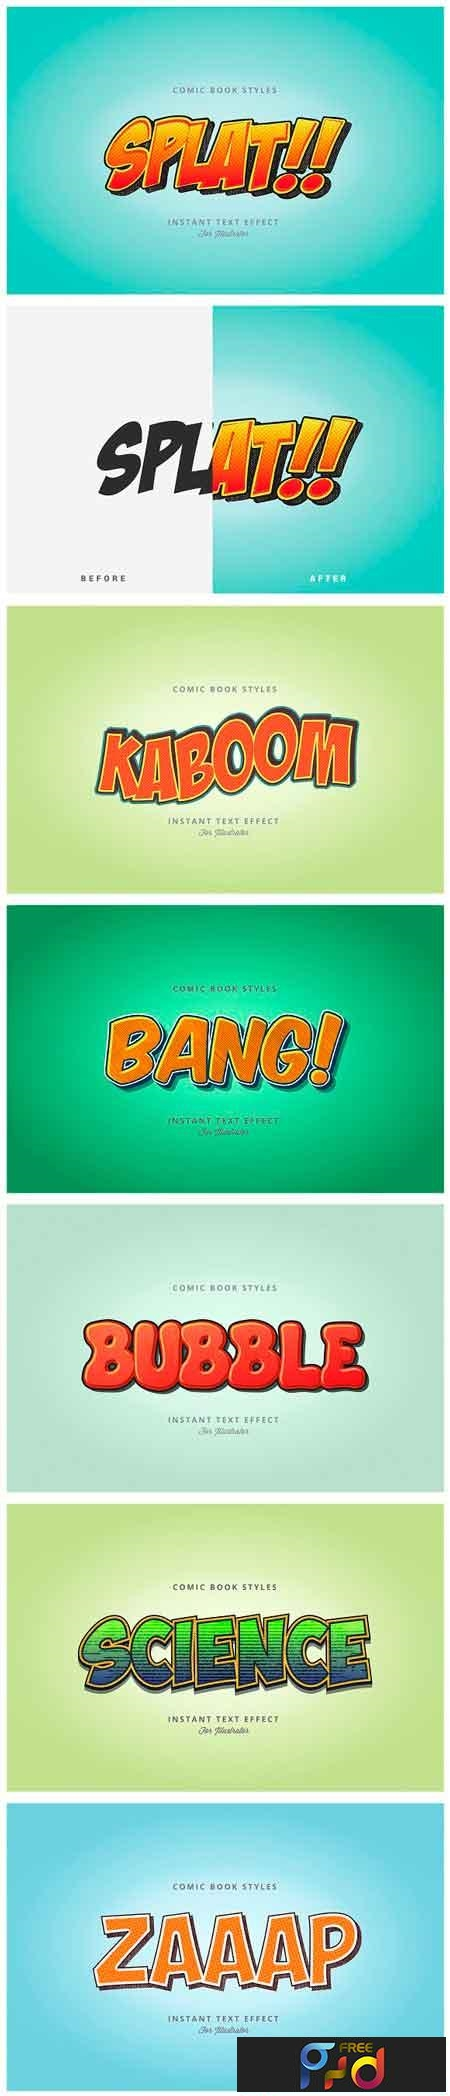 Comic and Cartoon Text Effects (AI) 2949559 - FreePSDvn